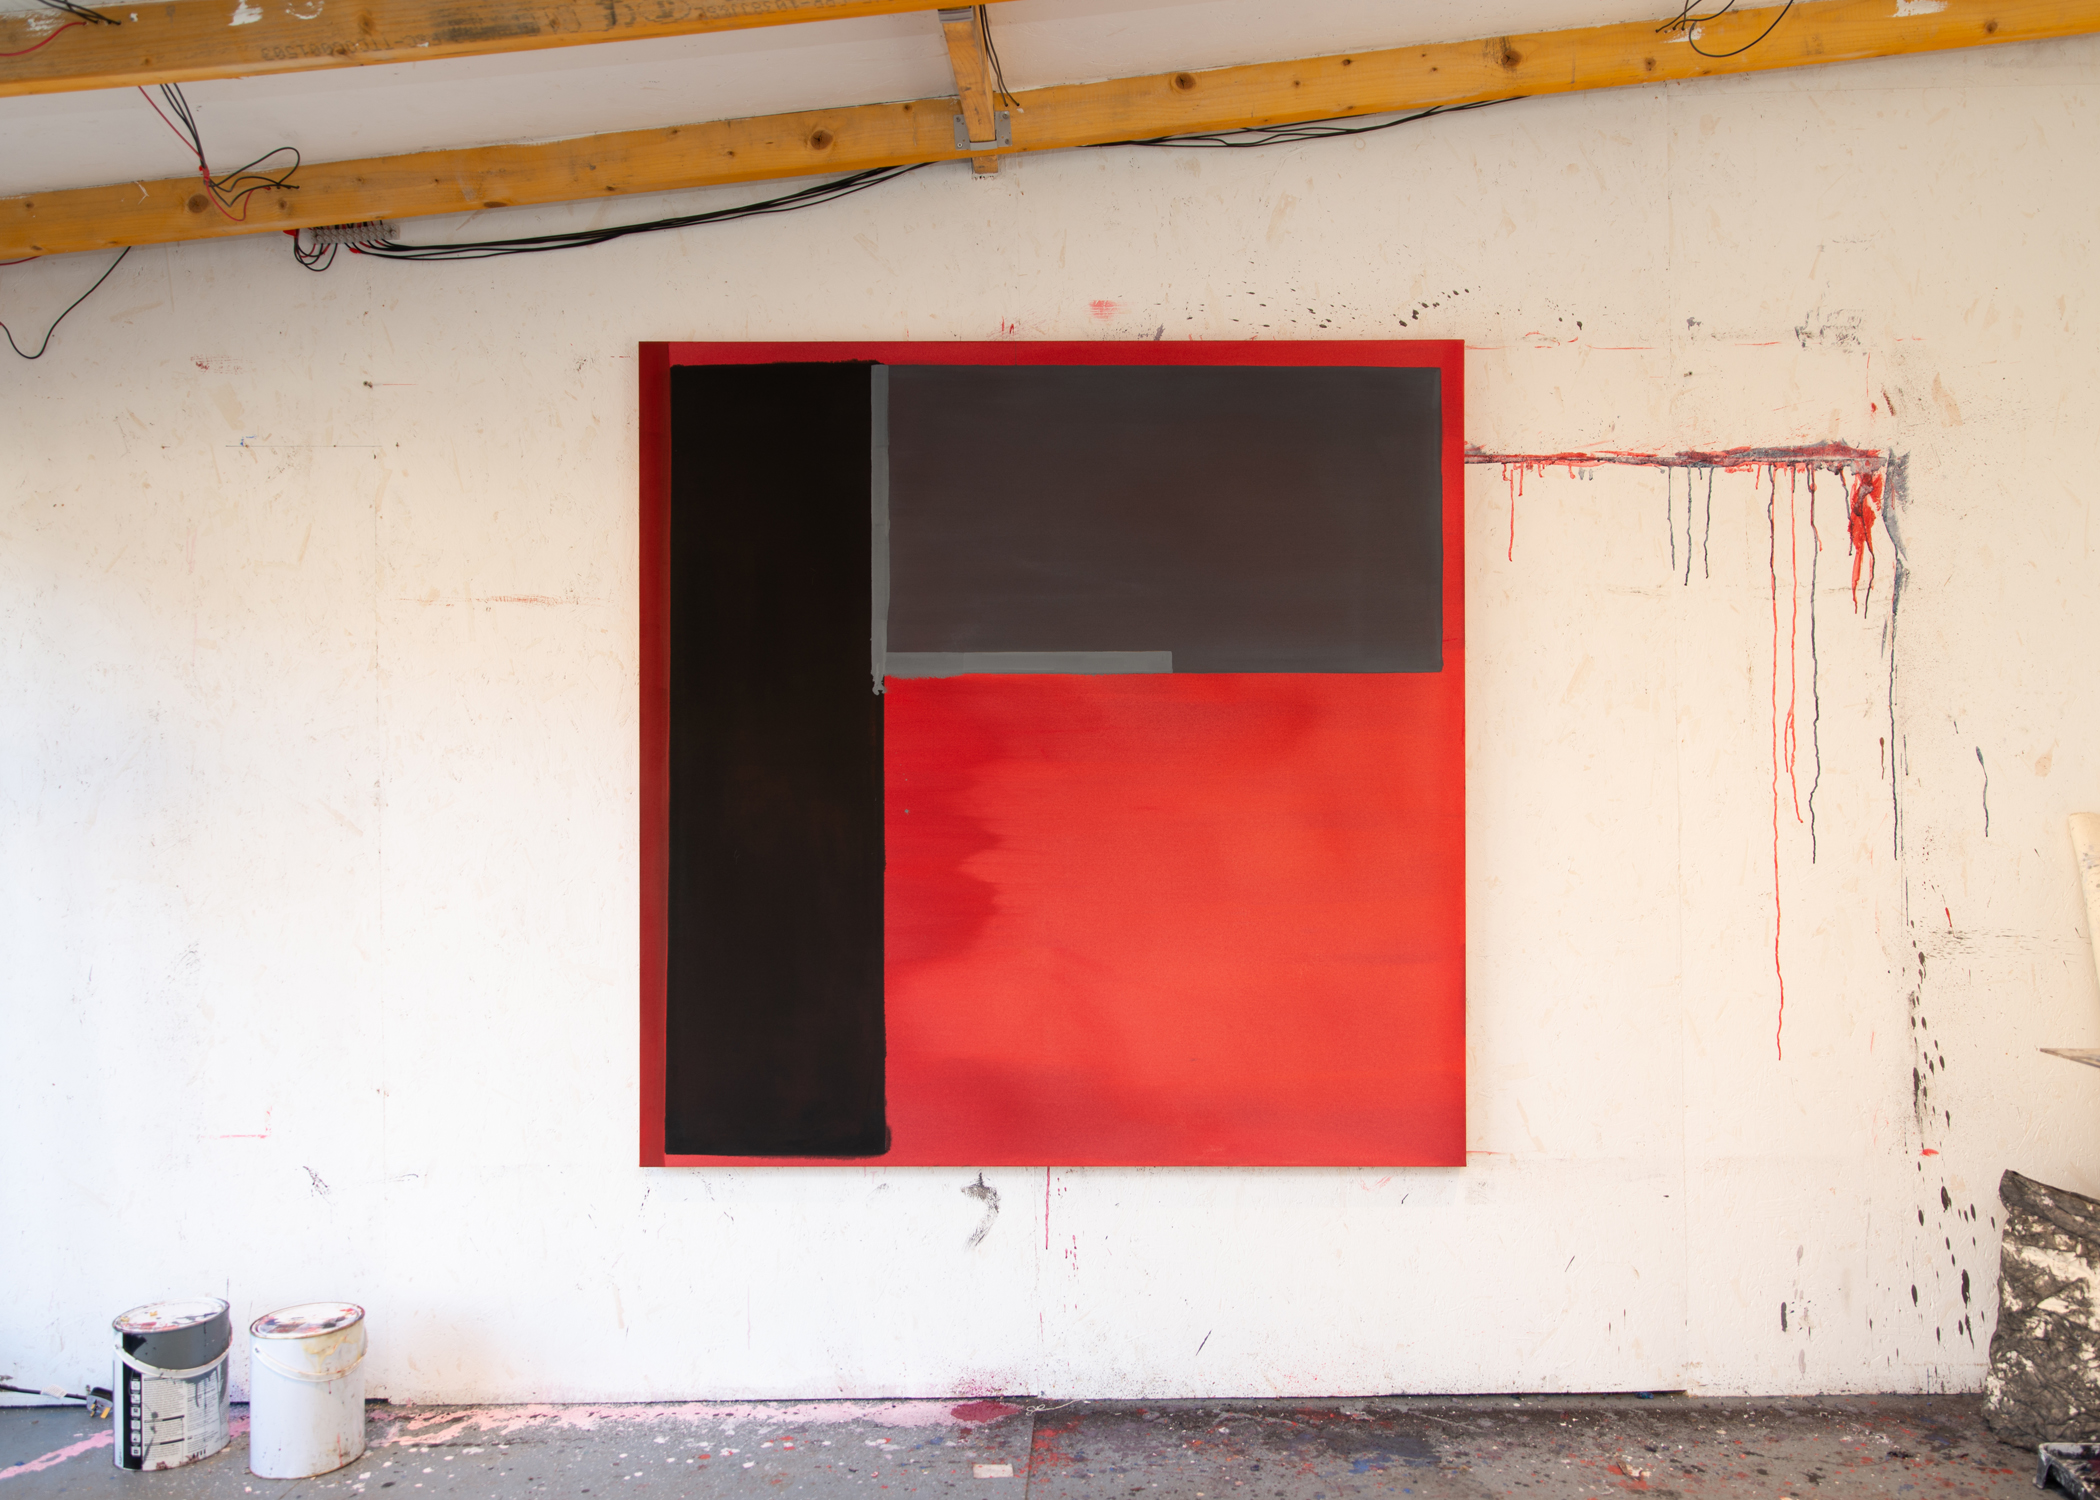 'Red, Black, Grey', 2018, Acrylic on Canvas, 150x150cm. Image